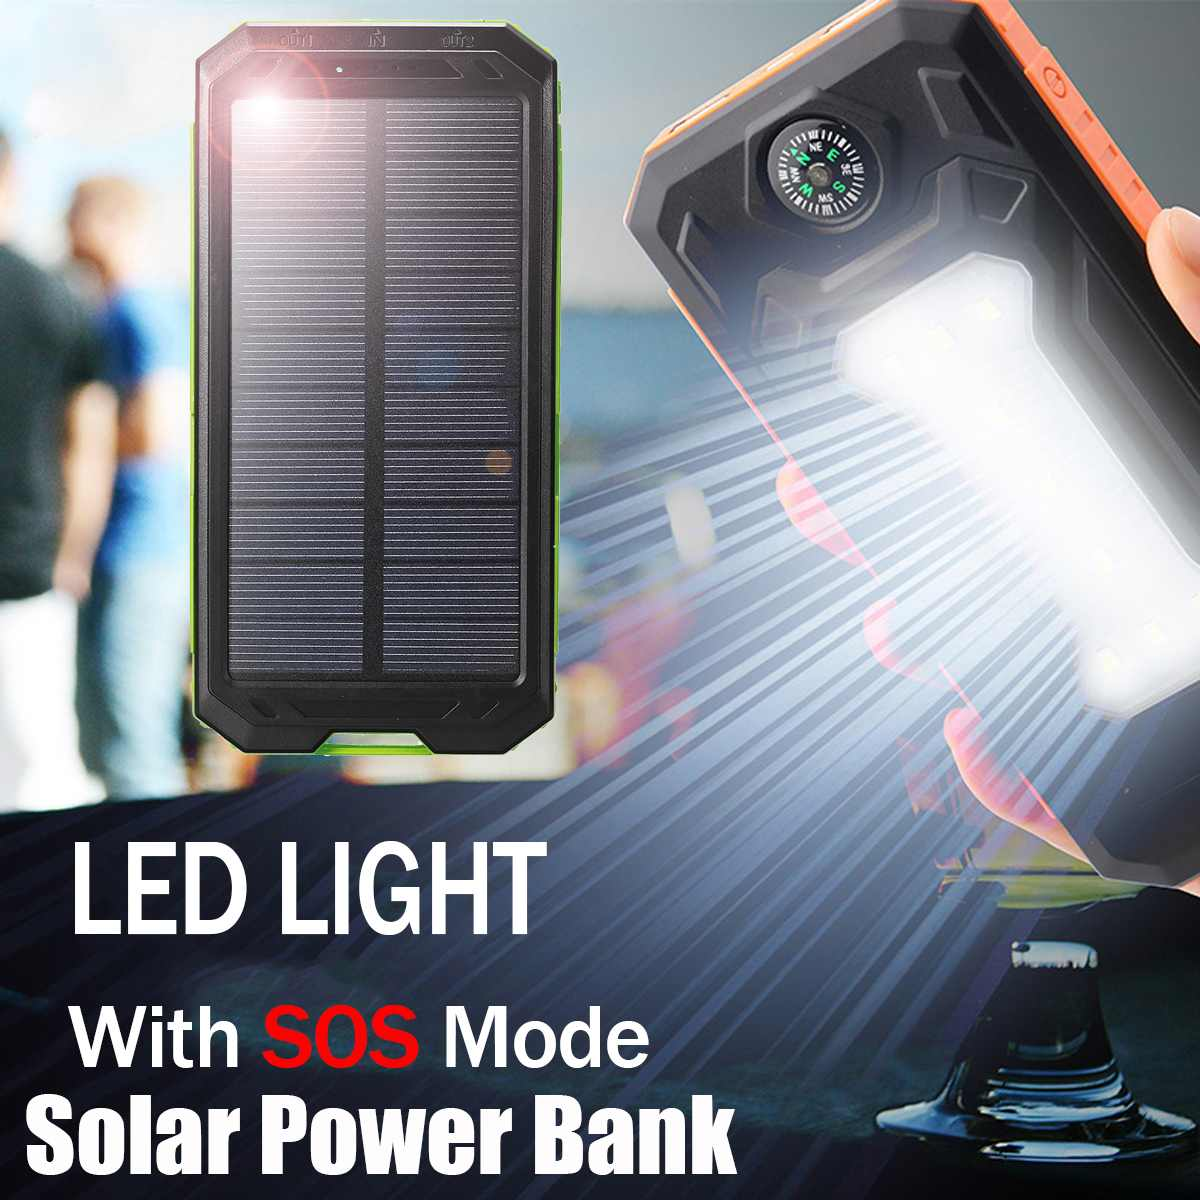 12000mAh Solar Power Bank Portable External Battery Solar Powerbank Charger 2 USB Ports LED lights SOS mode compass for Phone|Power Bank Accessories| |  - title=